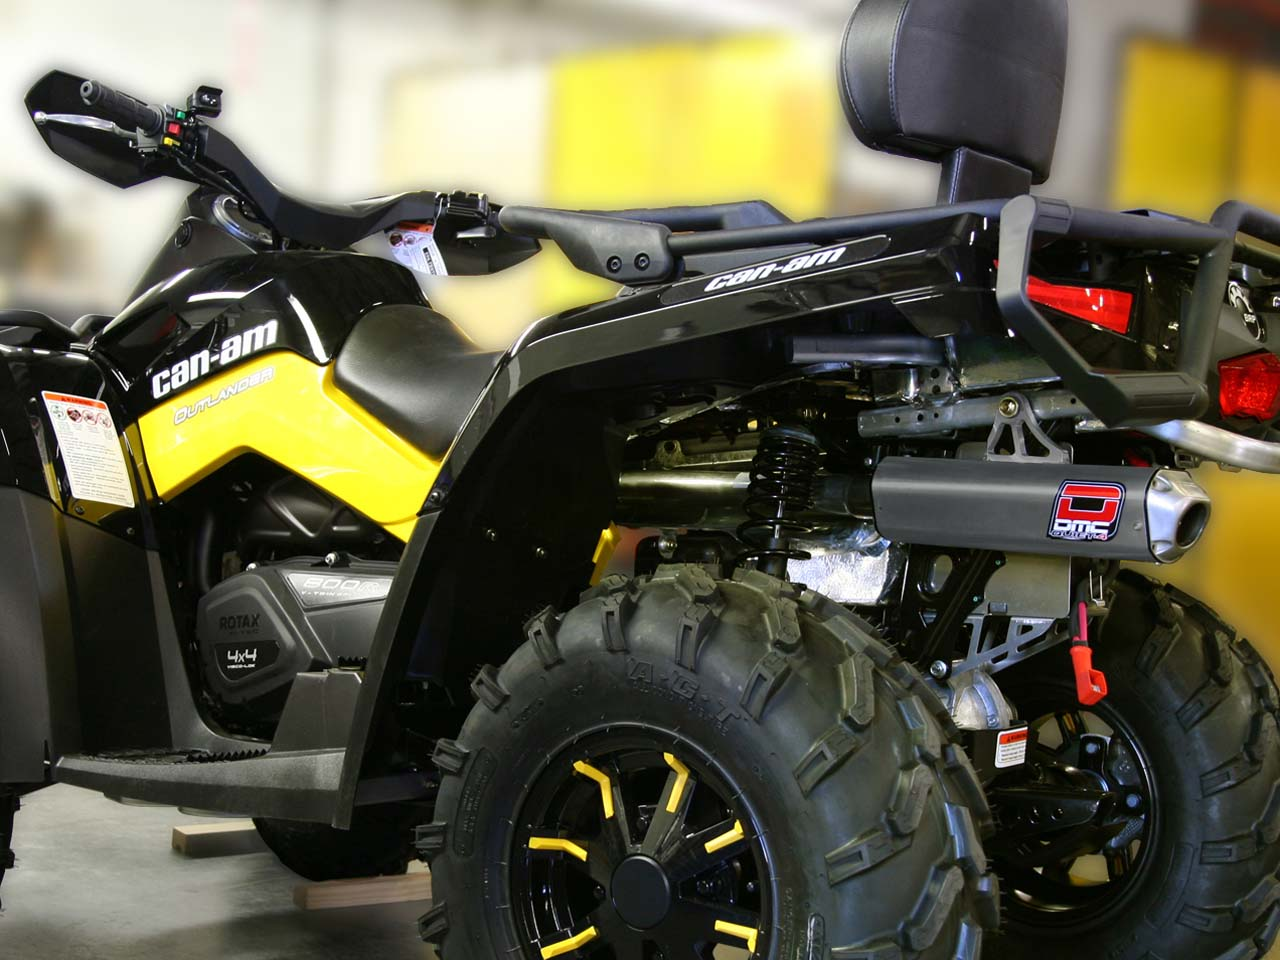 Atv Side By Side >> DMC announces two new Afterburner Slip-Ons for the Can Am Outlander 800 and 800 Max | ATV ...